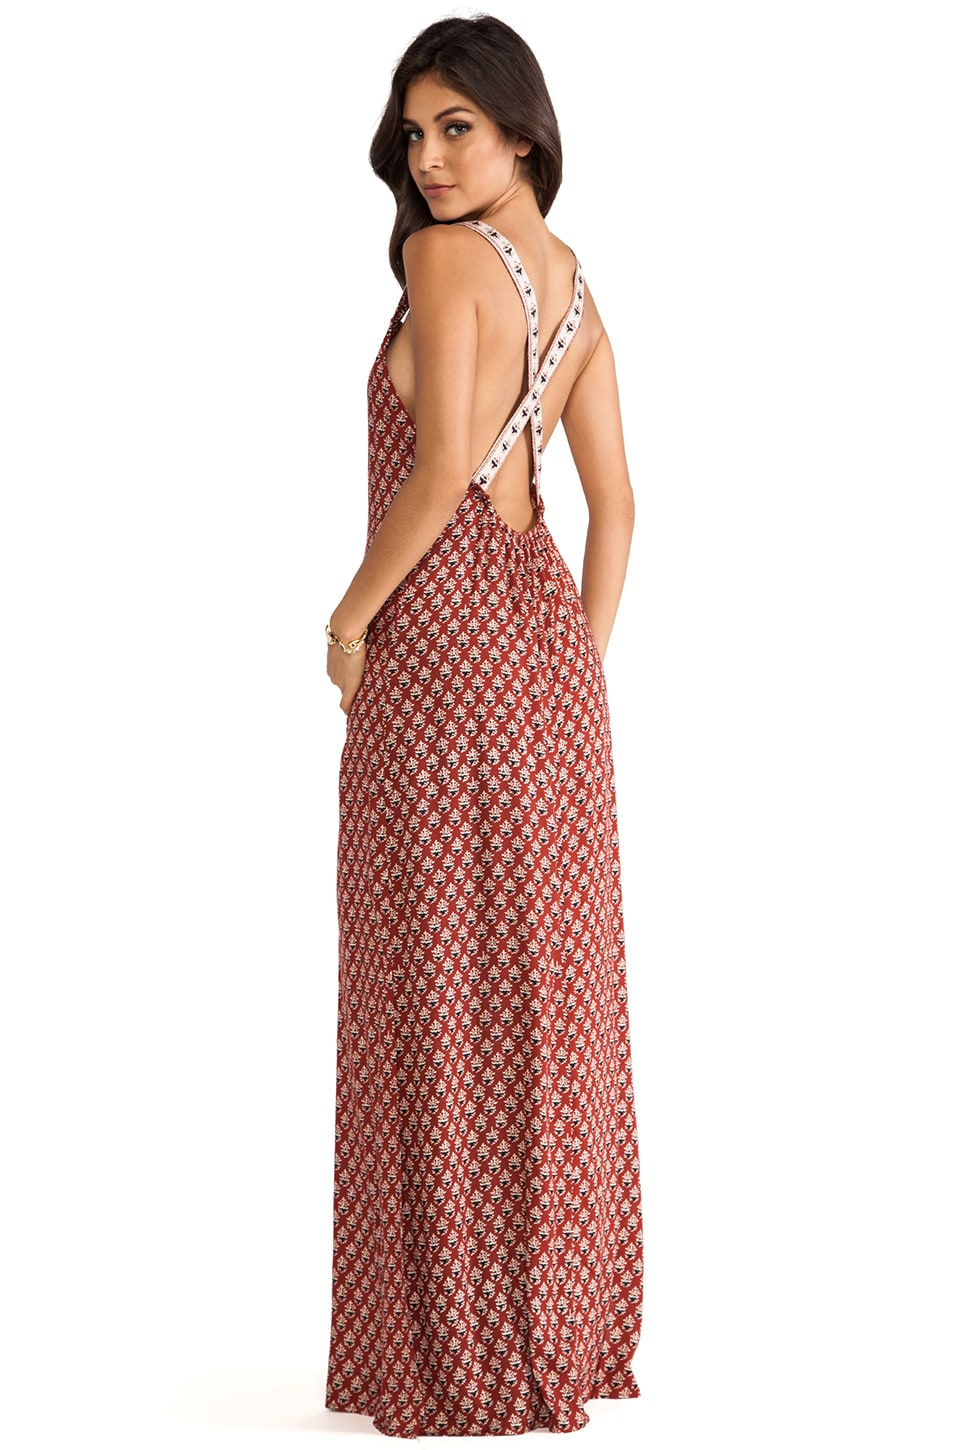 FLYNN SKYE Apron Maxi Dress in Burnt Boho